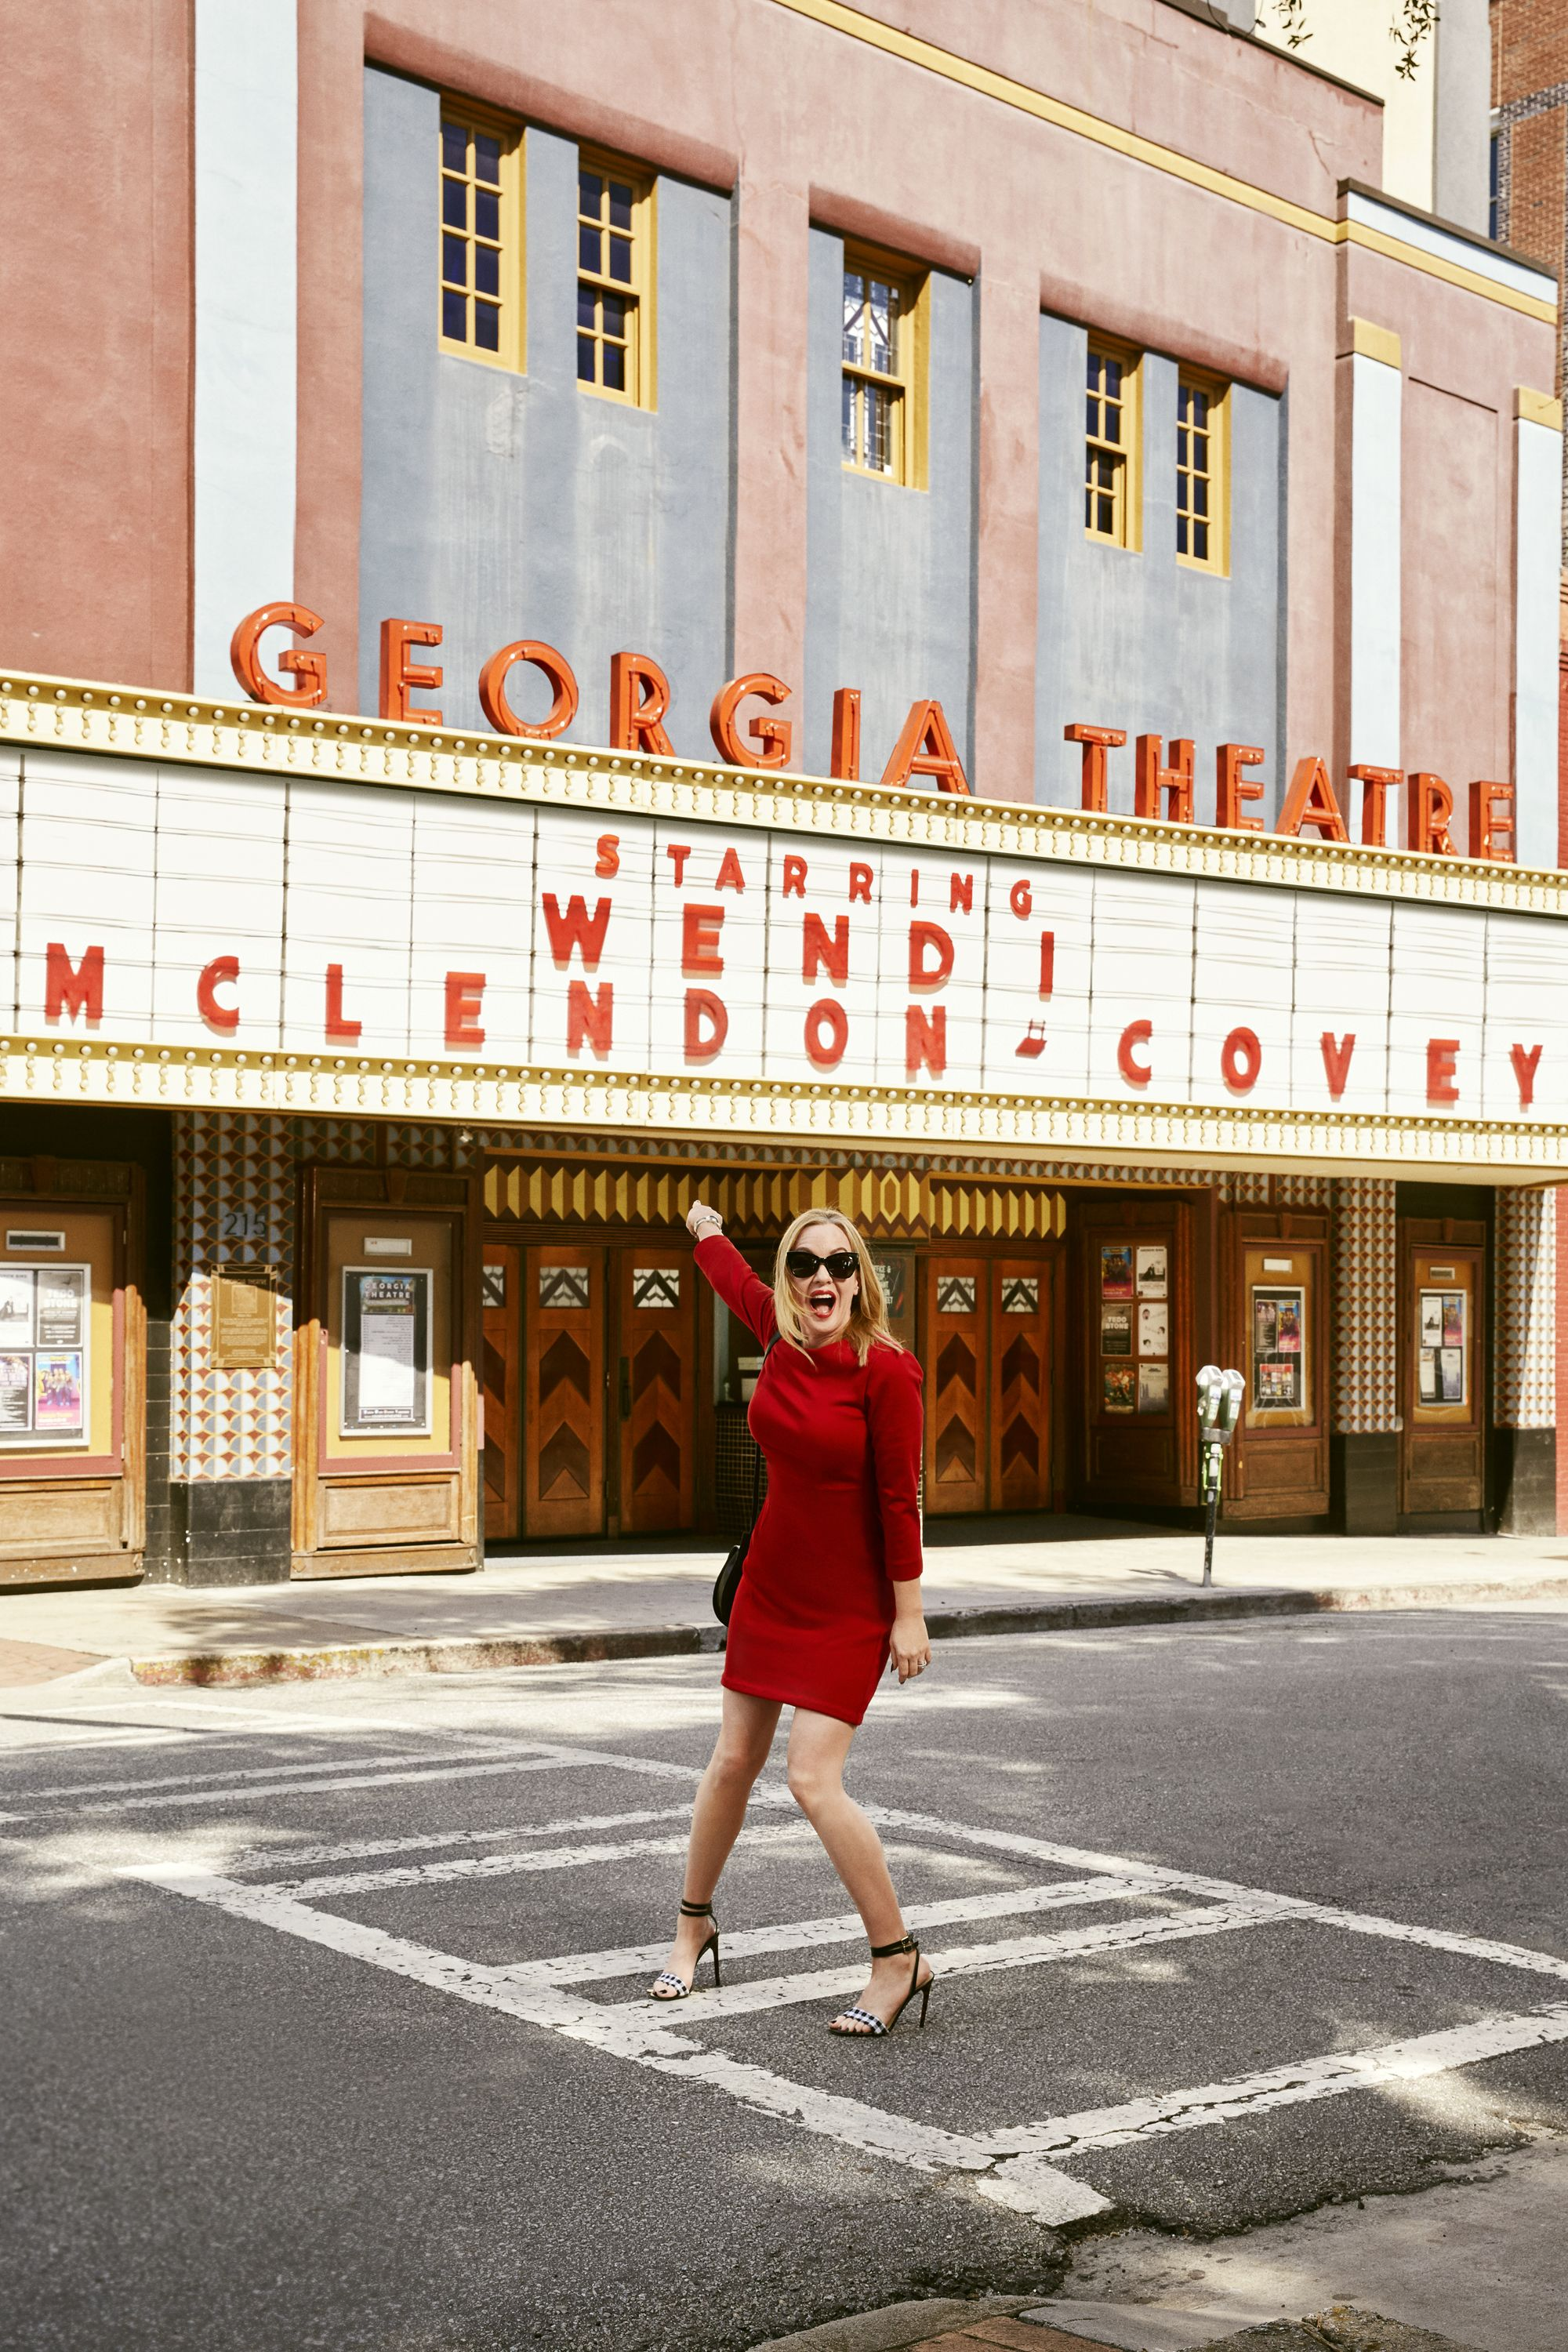 "<p>Wendi is ready to paint the town red with glam sunnies and strappy checkered sandals, because red is, well, red-hot this fall. Use it to pump up the volume on everything from a classic sheath dress to bold lips.</p><p><em><strong>Dress</strong>, $39, <a href=""http://joefresh.com"" target=""_blank"">joefresh.com</a>. <strong>Sunglasses</strong>, $22, <a href=""http://fantas-eyes.com"" target=""_blank"">fantas-eyes.com</a>. <strong>Cuff</strong>, Jenny Bird, $95, <a href=""http://cameonouveau.com"" target=""_blank"">cameonouveau.com</a> (20% off sitewide with code GHKSEPT20). <strong>Bag</strong>, $59, <a href=""http://ninewest.com"" target=""_blank"">ninewest.com</a>. <strong>Heels</strong>, $130, Marshalls stores.</em></p><p><em><strong>On location:</strong> <a href=""http://www.georgiatheatre.com/"" target=""_blank"">Georgia Theatre</a><br></em><em>Imagine your name in lights on the marquee of the 1889 Georgia Theatre in Athens, where you can catch live concerts, old-school movies and more.</em></p>"